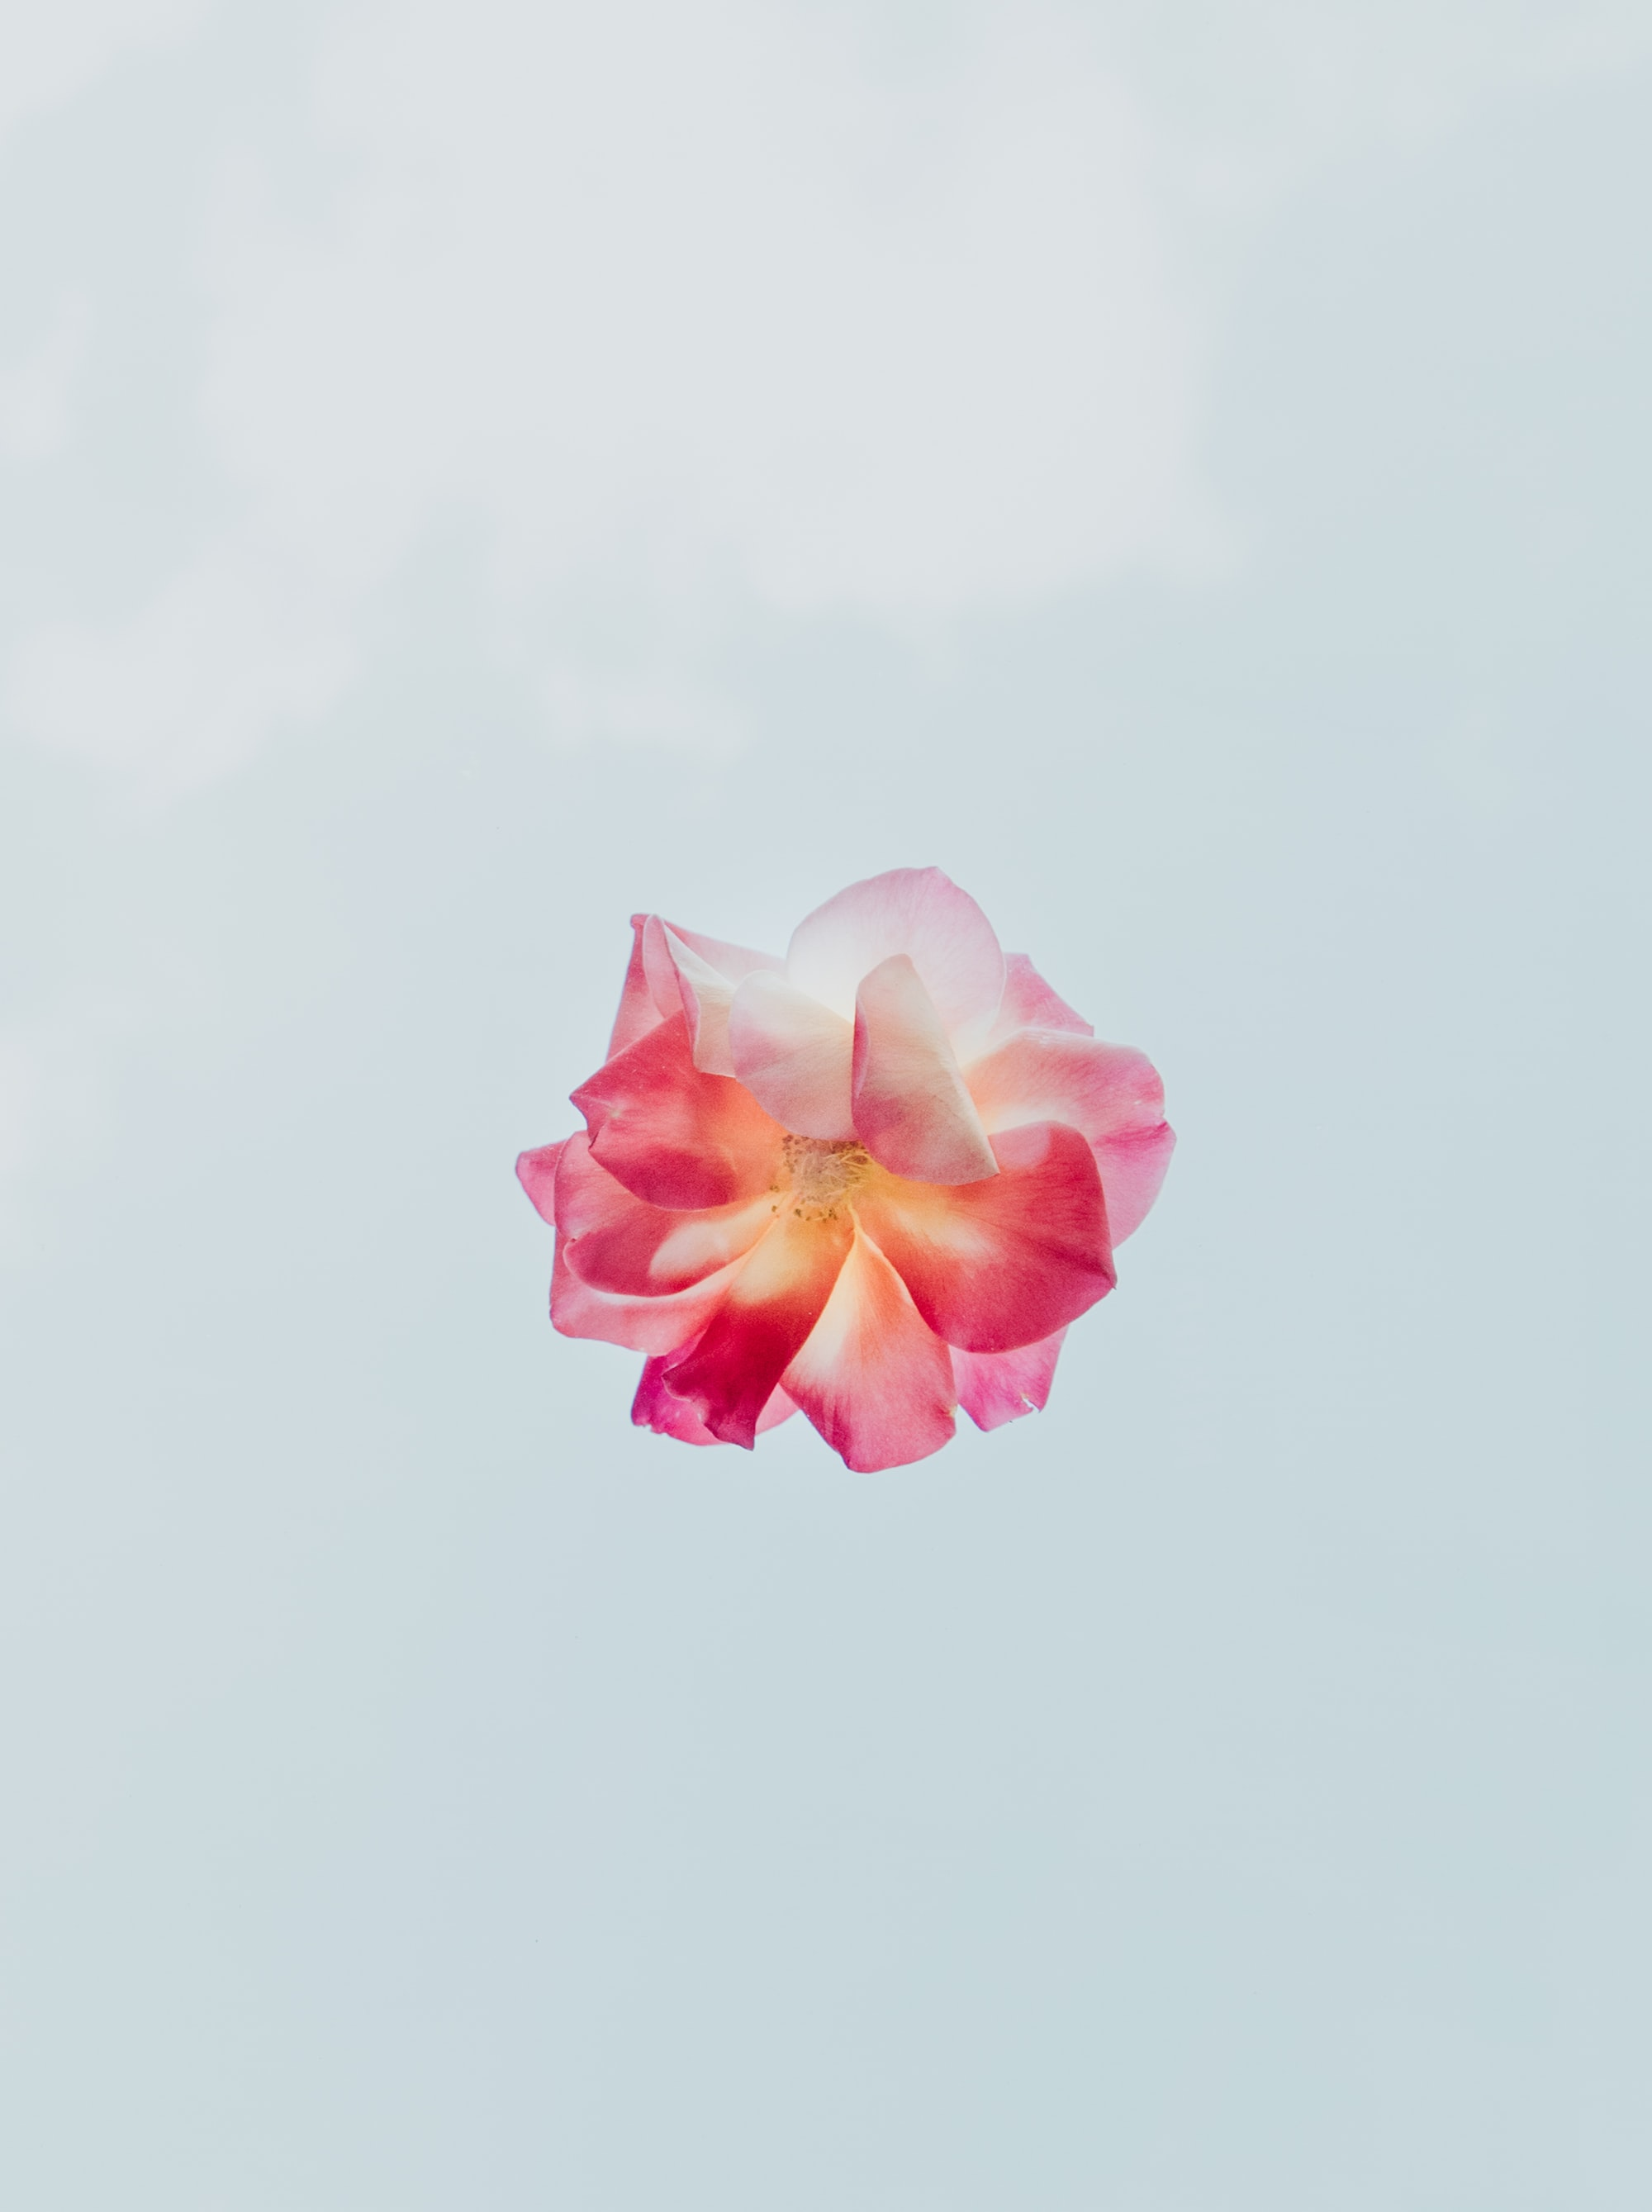 Taken at daytime, the flower was placed on a piece of glass above me so I could get the clouds in the background.